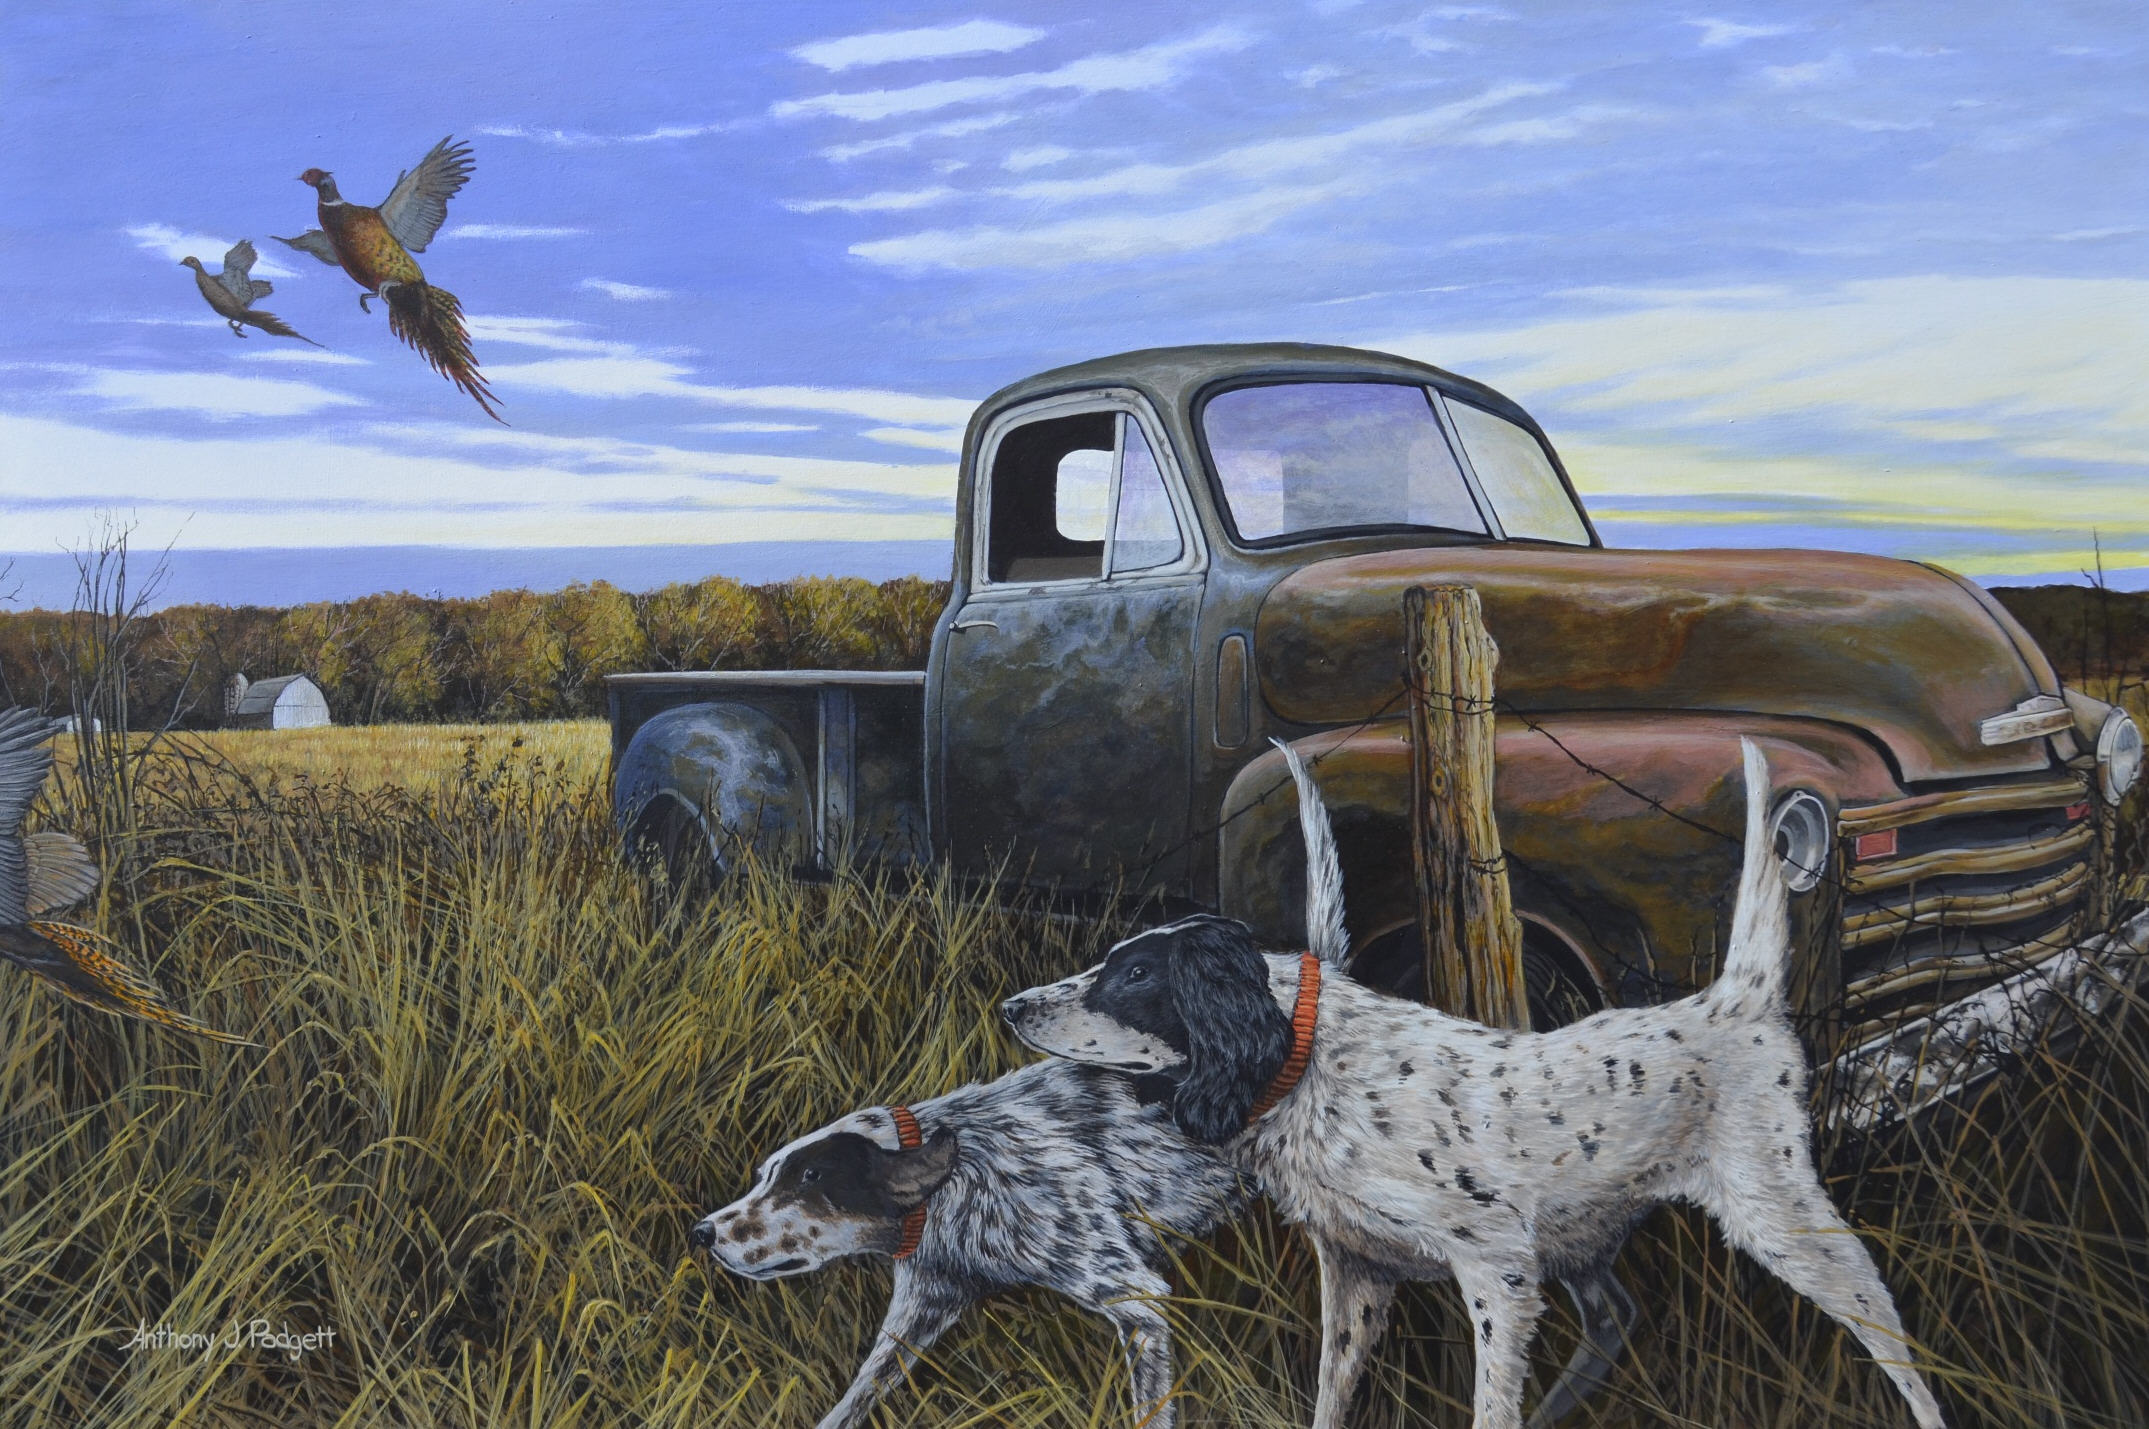 English Setters with Pheasants